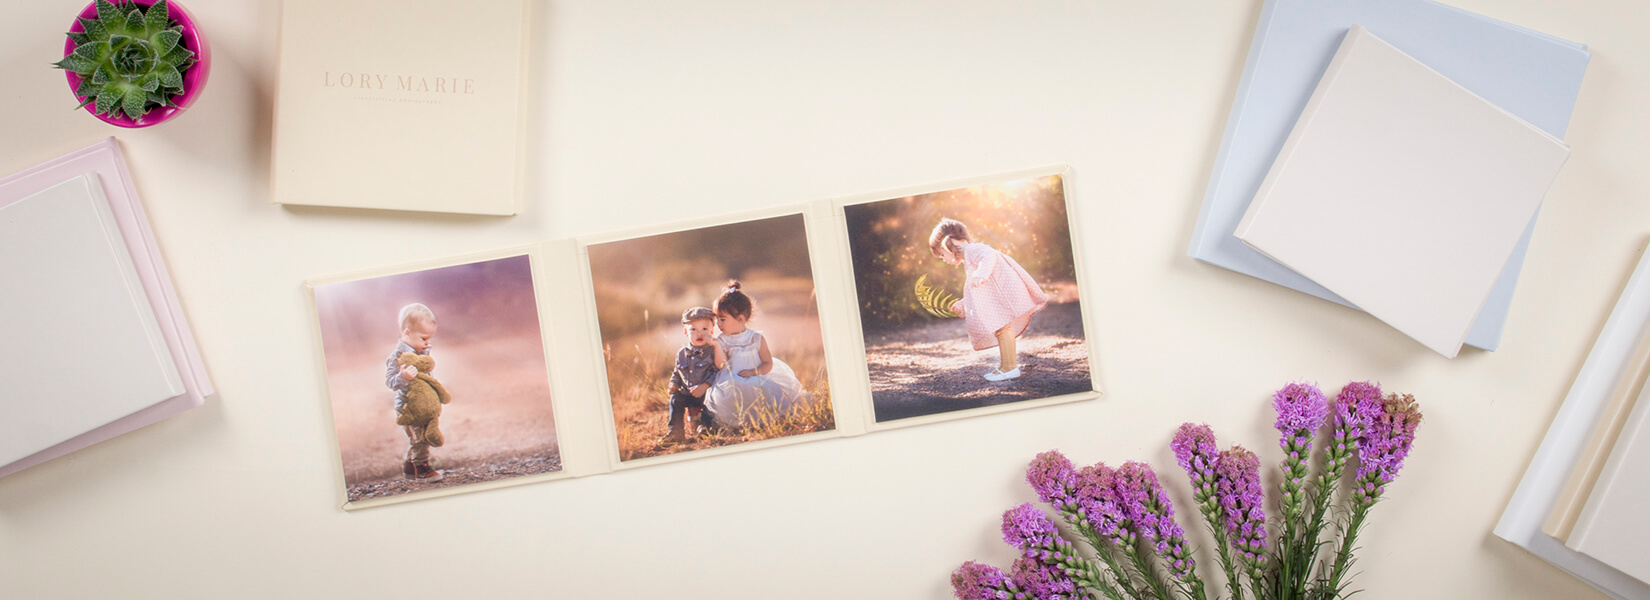 TRIPLEX upselling tool nphoto professional product trifold 3 images display professional photographer